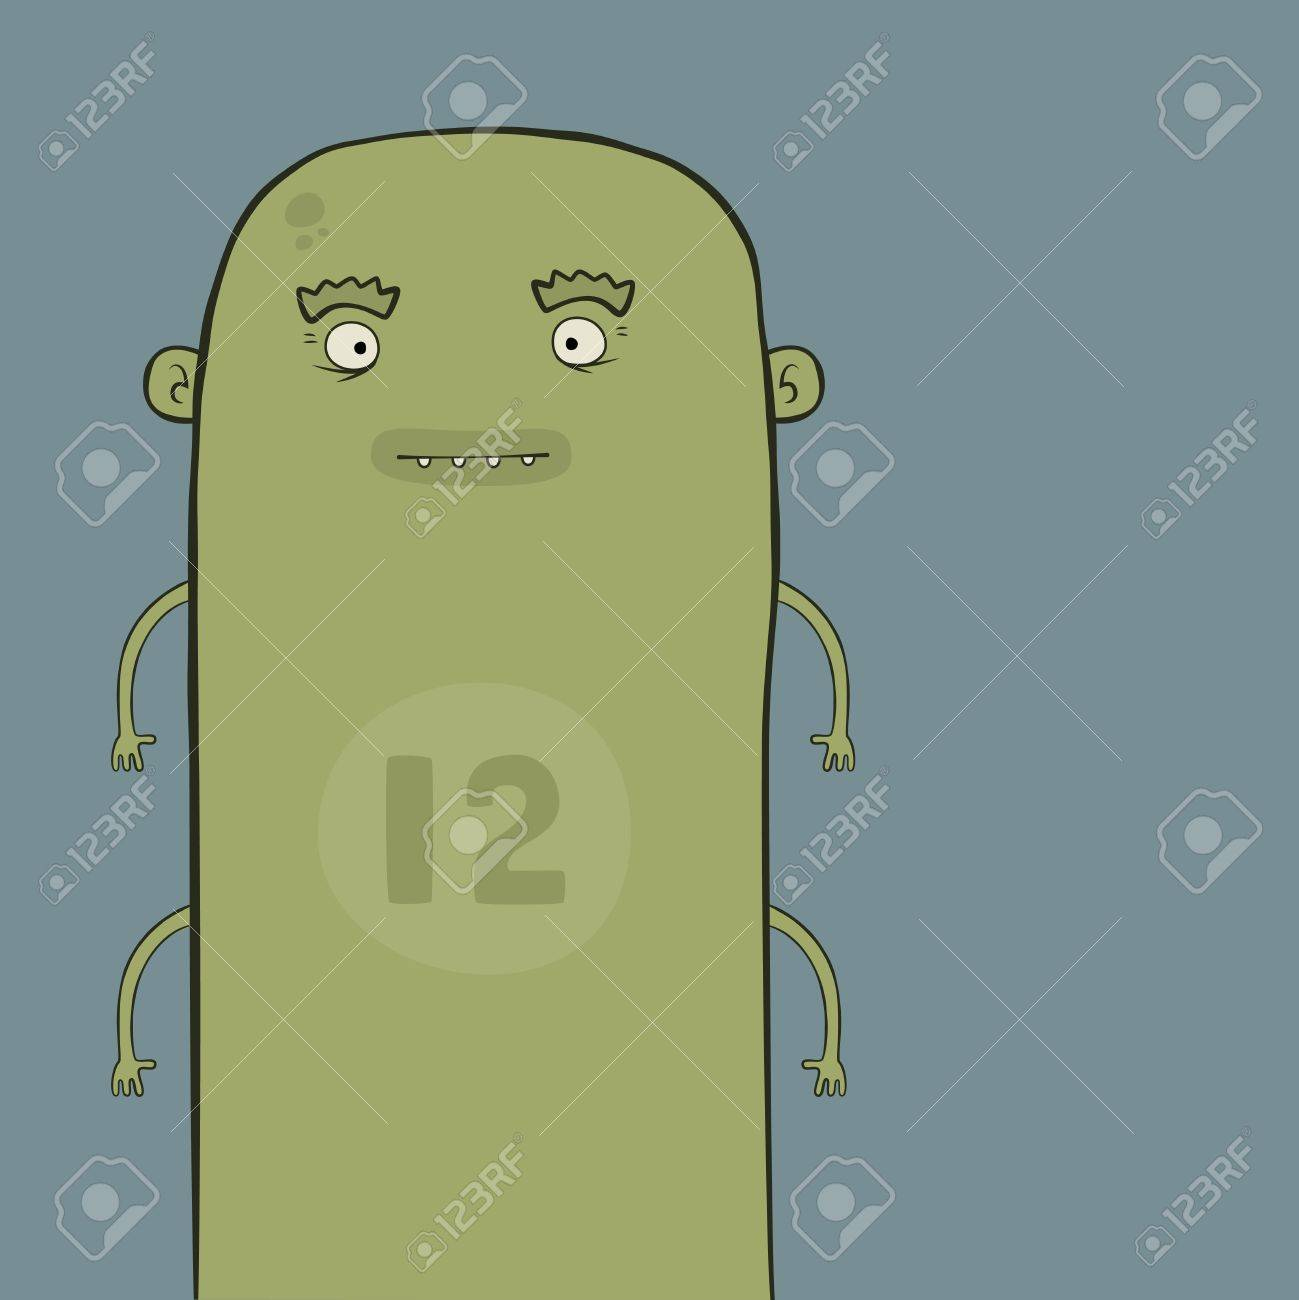 green cartoon character with four arms Stock Vector - 8146703